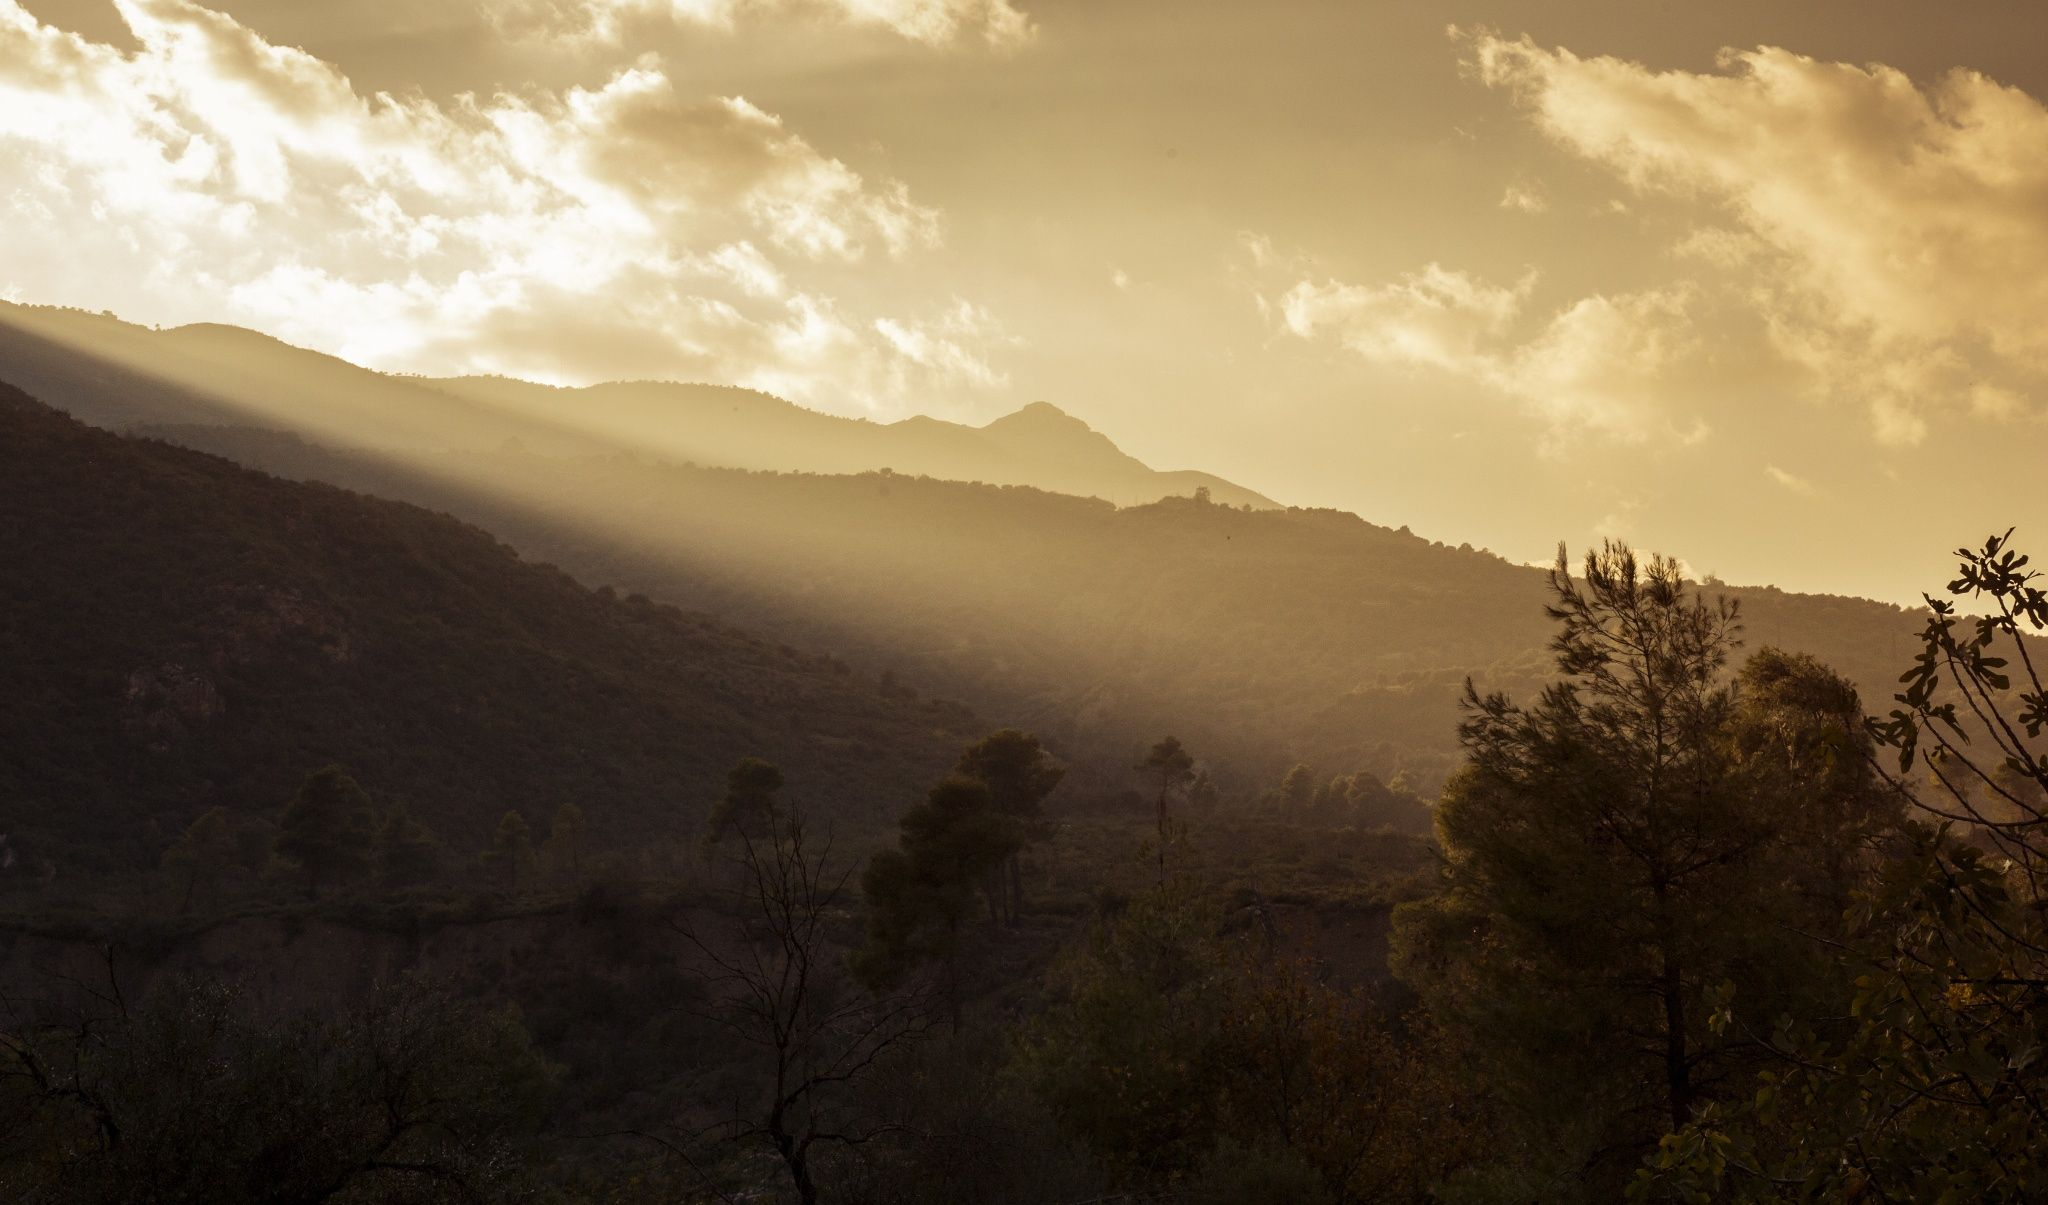 Misty mountains by Spyros Champipis on 500px